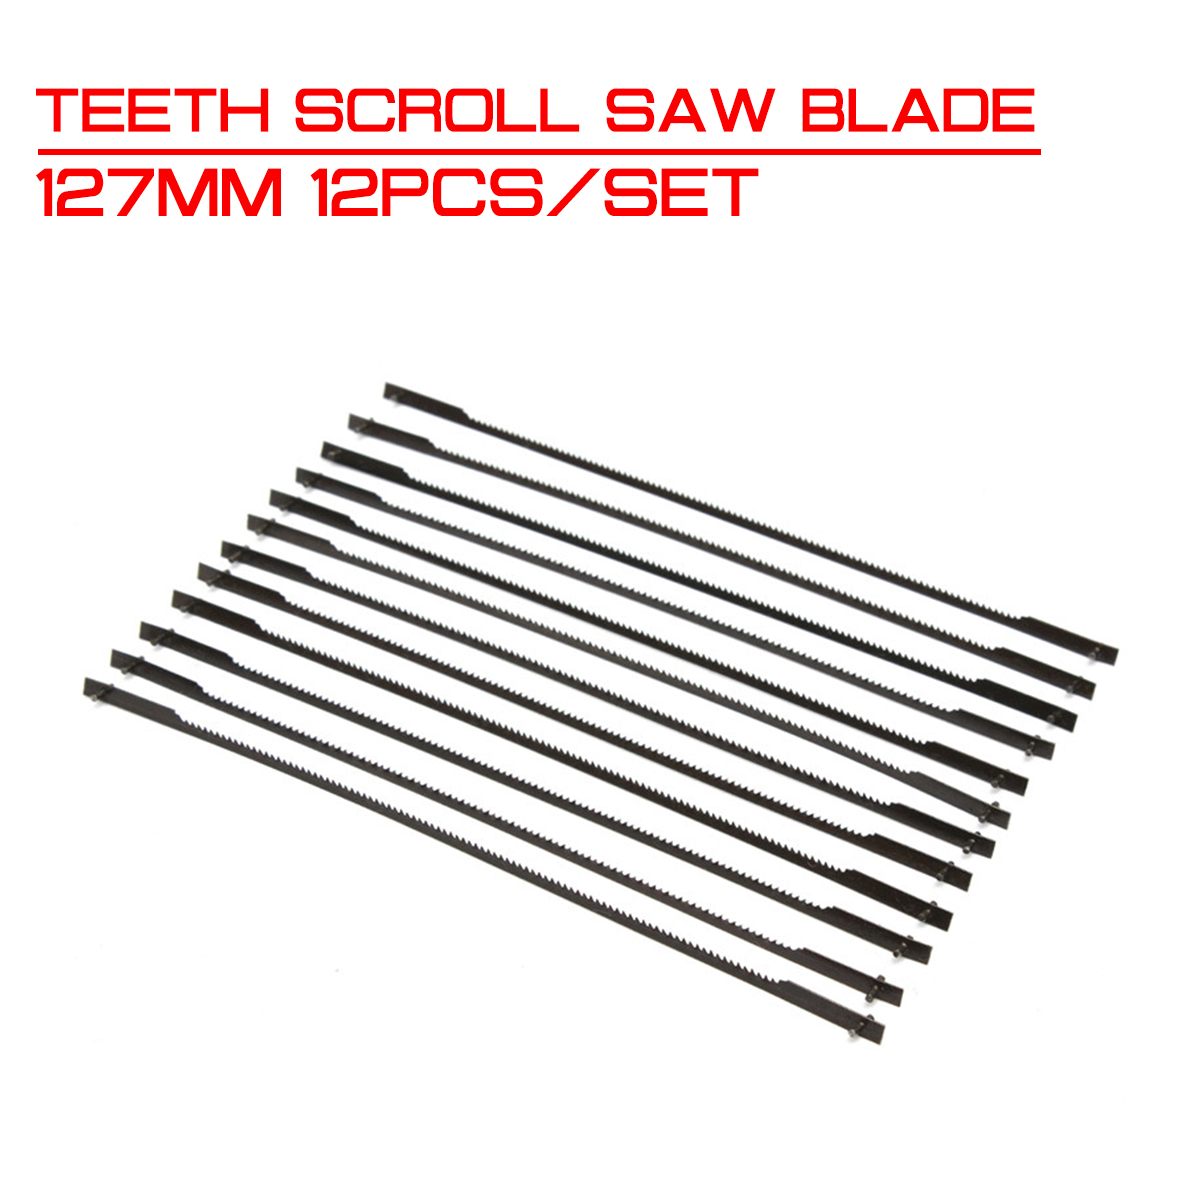 127mm 12Pcs/set Teeth Scroll Saw Blade Woodworking Power Tool Accessories Black for Cutting Wood image